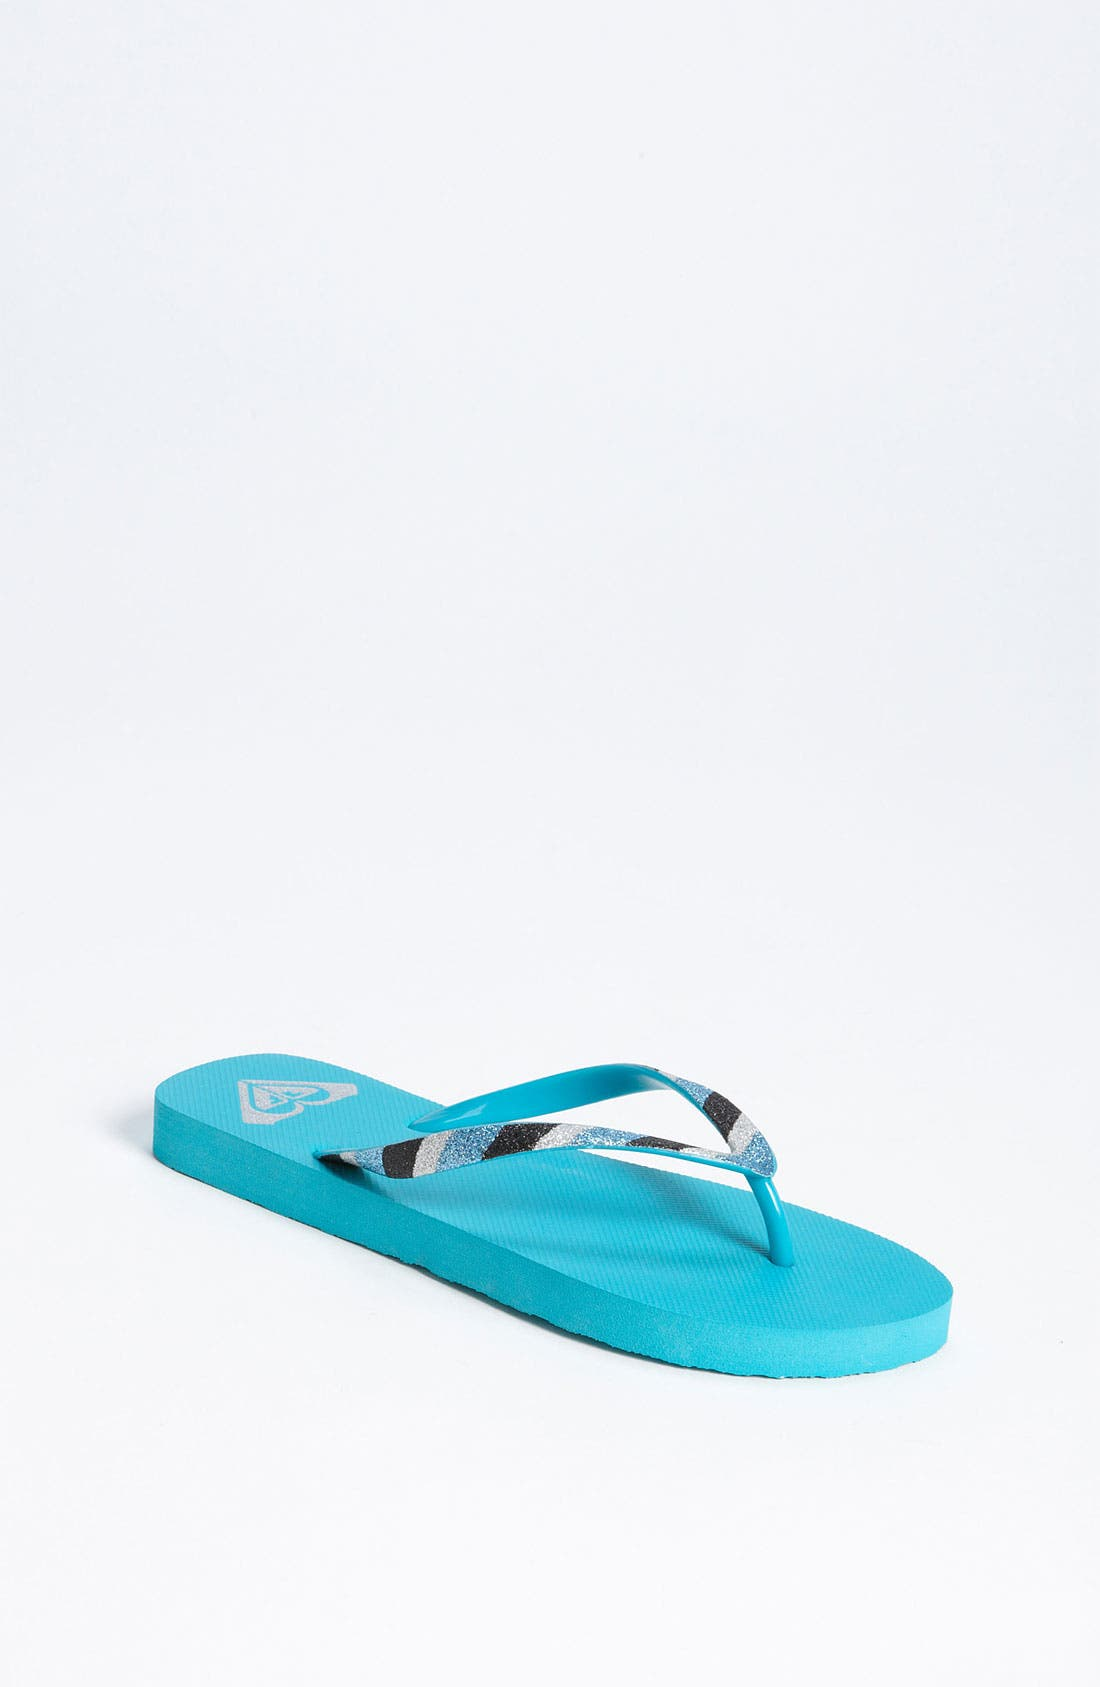 Alternate Image 1 Selected - Roxy Glitter Flip Flop (Toddler, Little Kid & Big Kid)